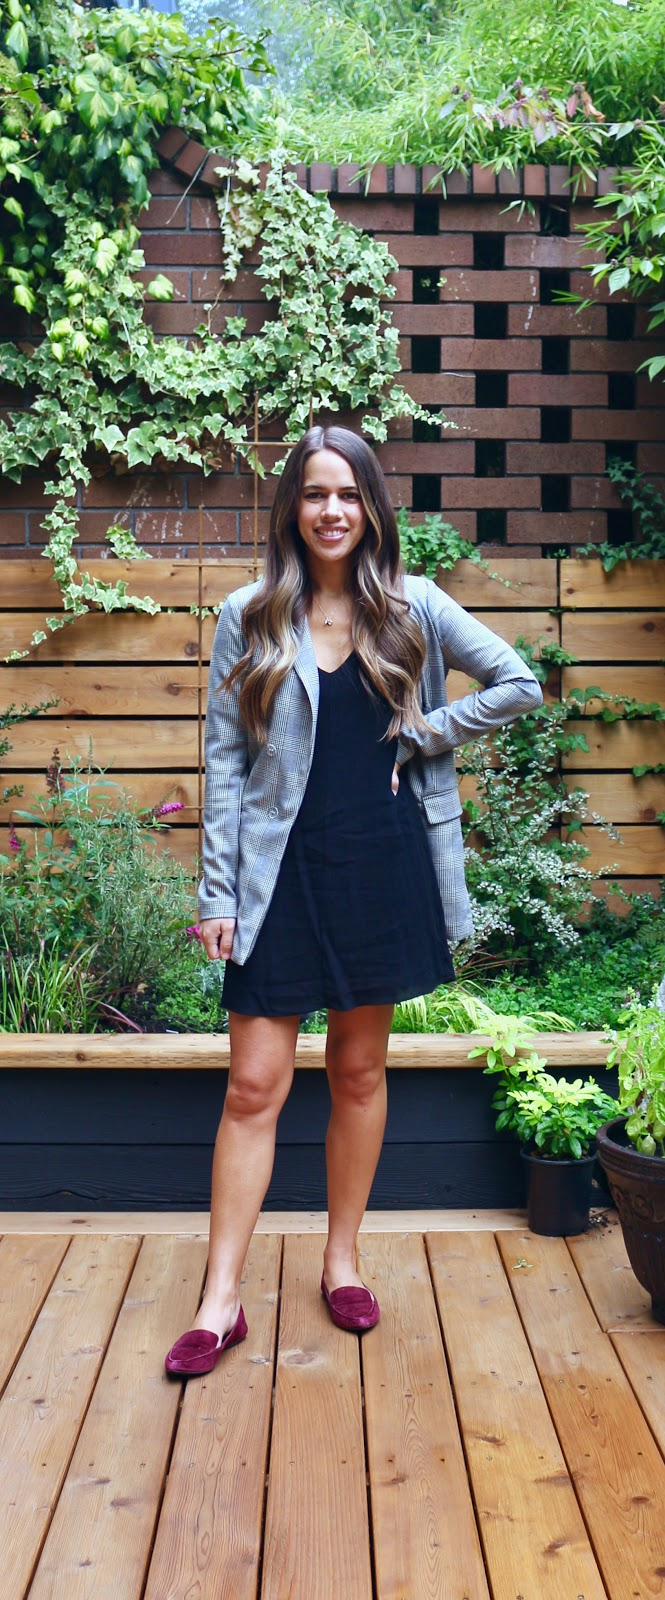 Jules in Flats - Plaid Blazer with V-Neck Shift Dress (Business Casual Workwear on a Budget)